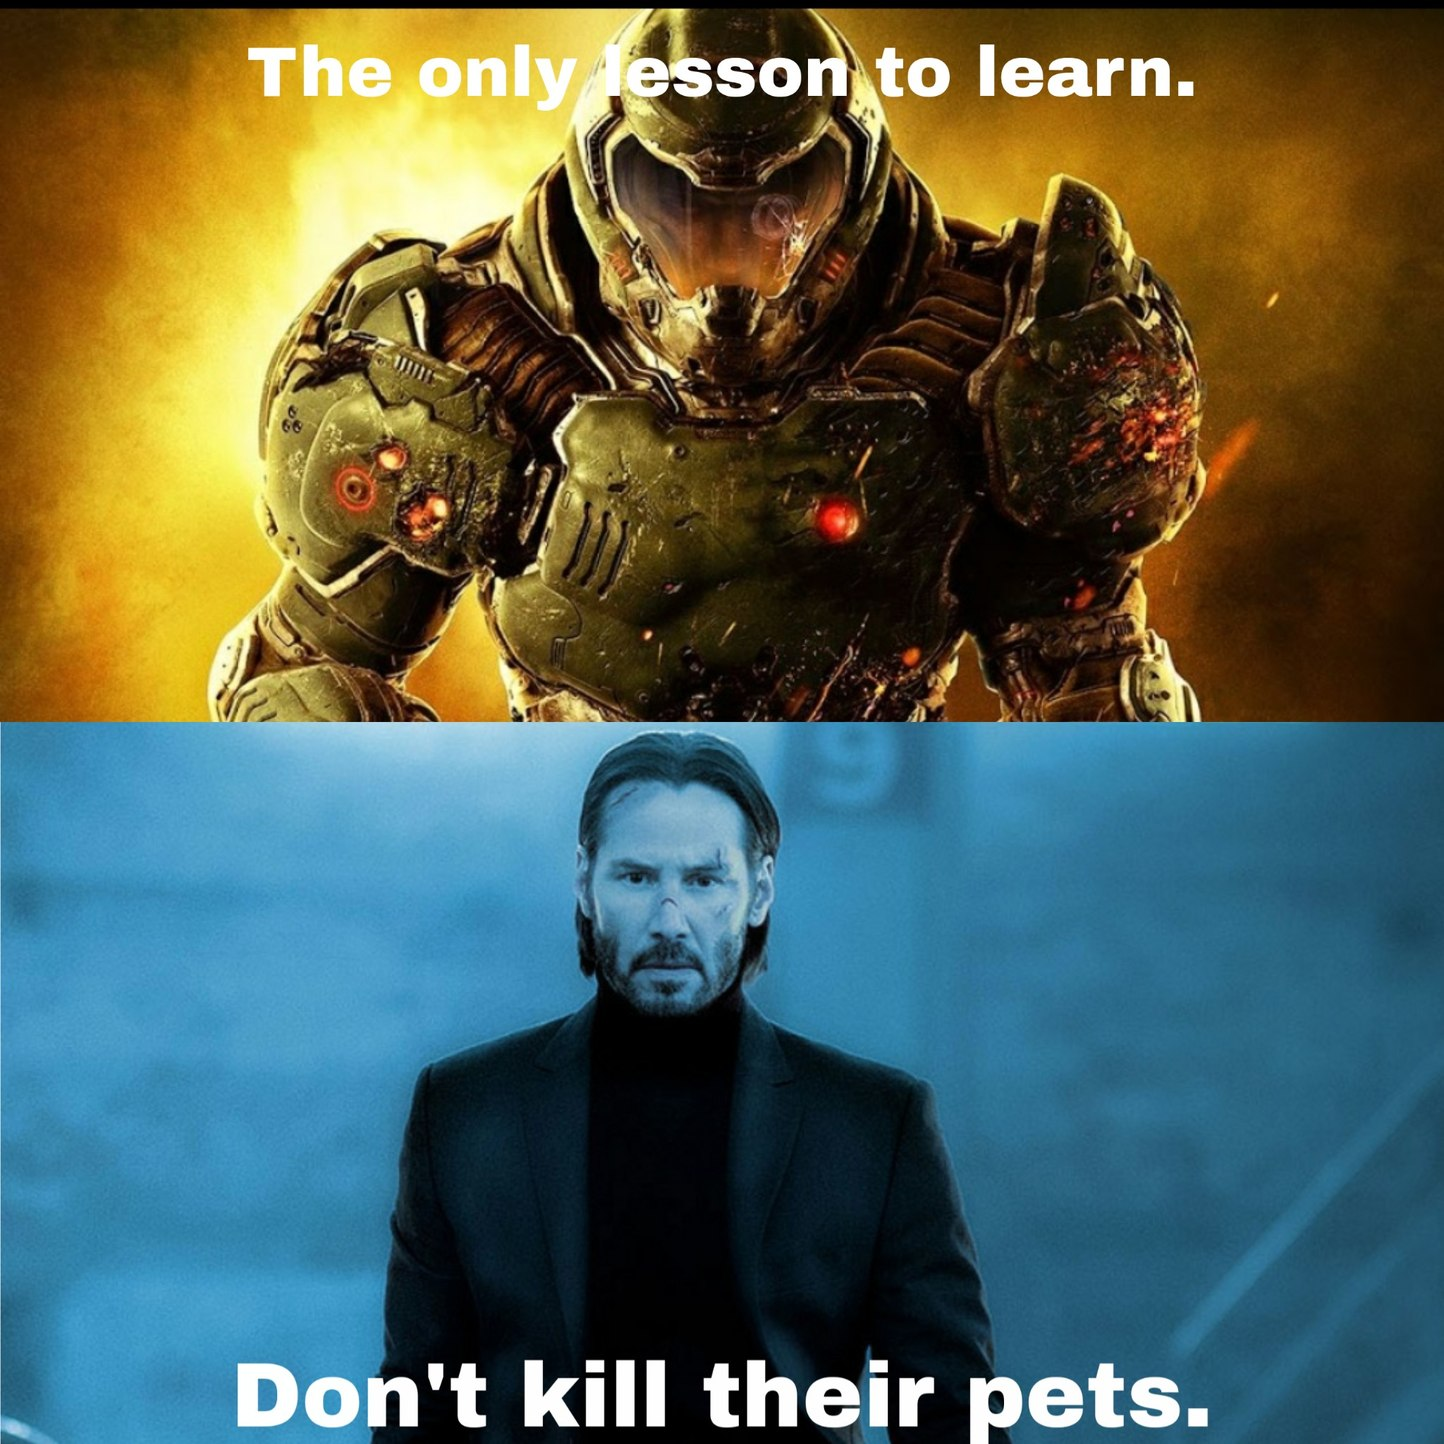 Don't kill people's pets in general, mkay - meme